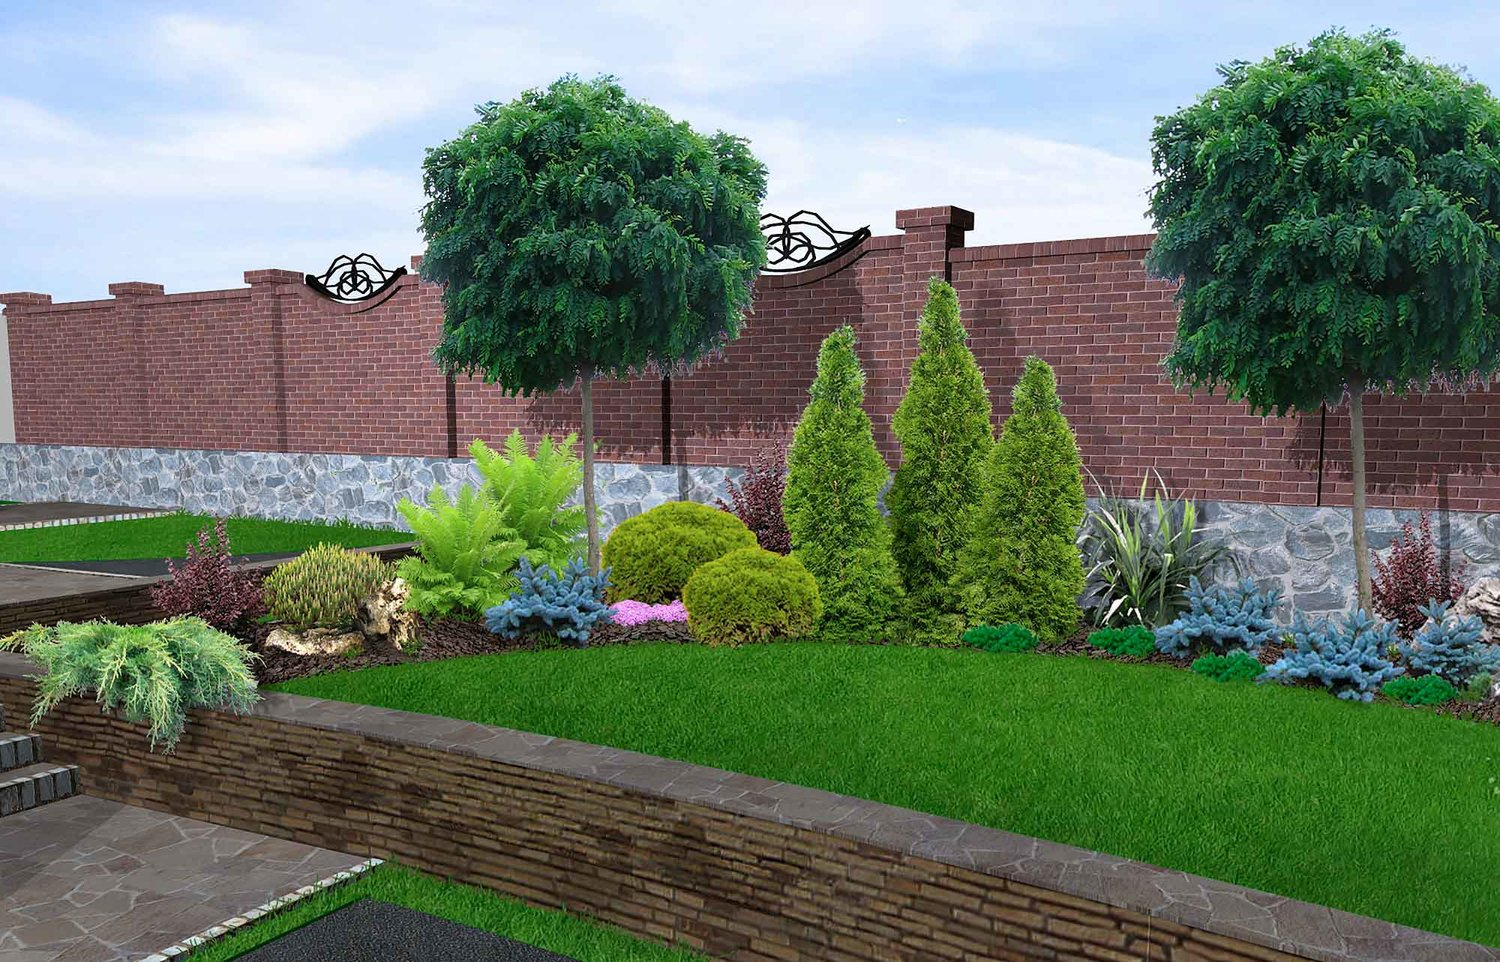 Local Lawn Care And Landscaping Delaware Landscape Services Columbus Landscaping Delaware Landscape Lawn Care Landscape